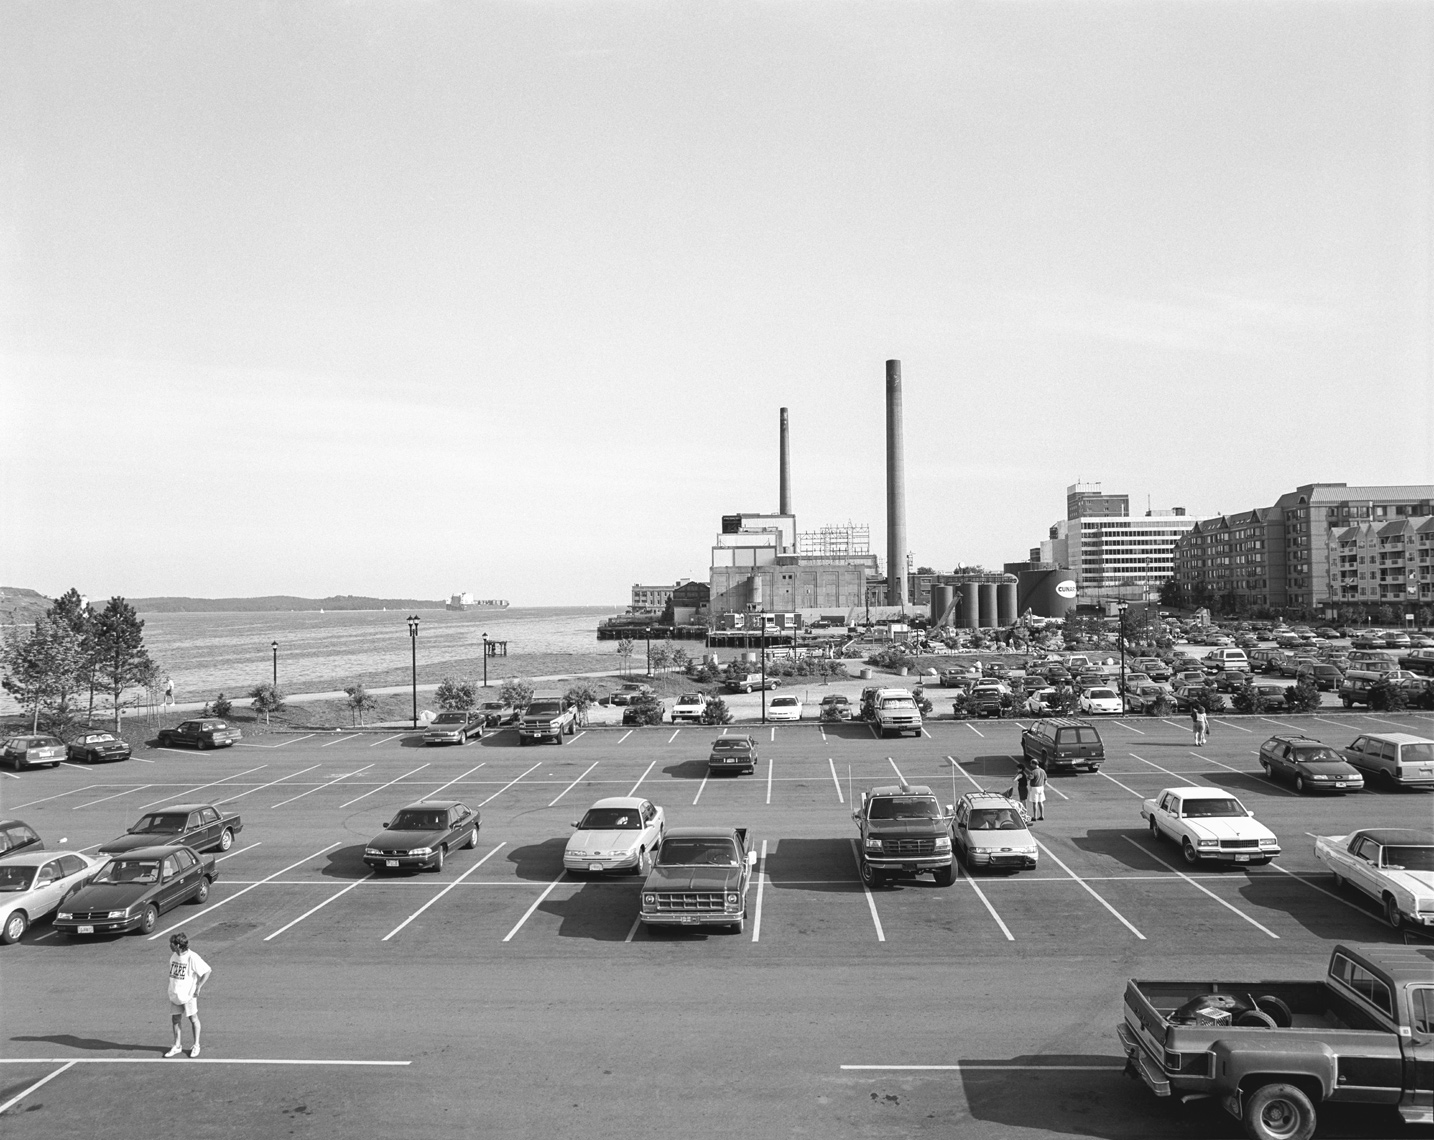 BW96_29C8_waterfront_Fwheel-Edit